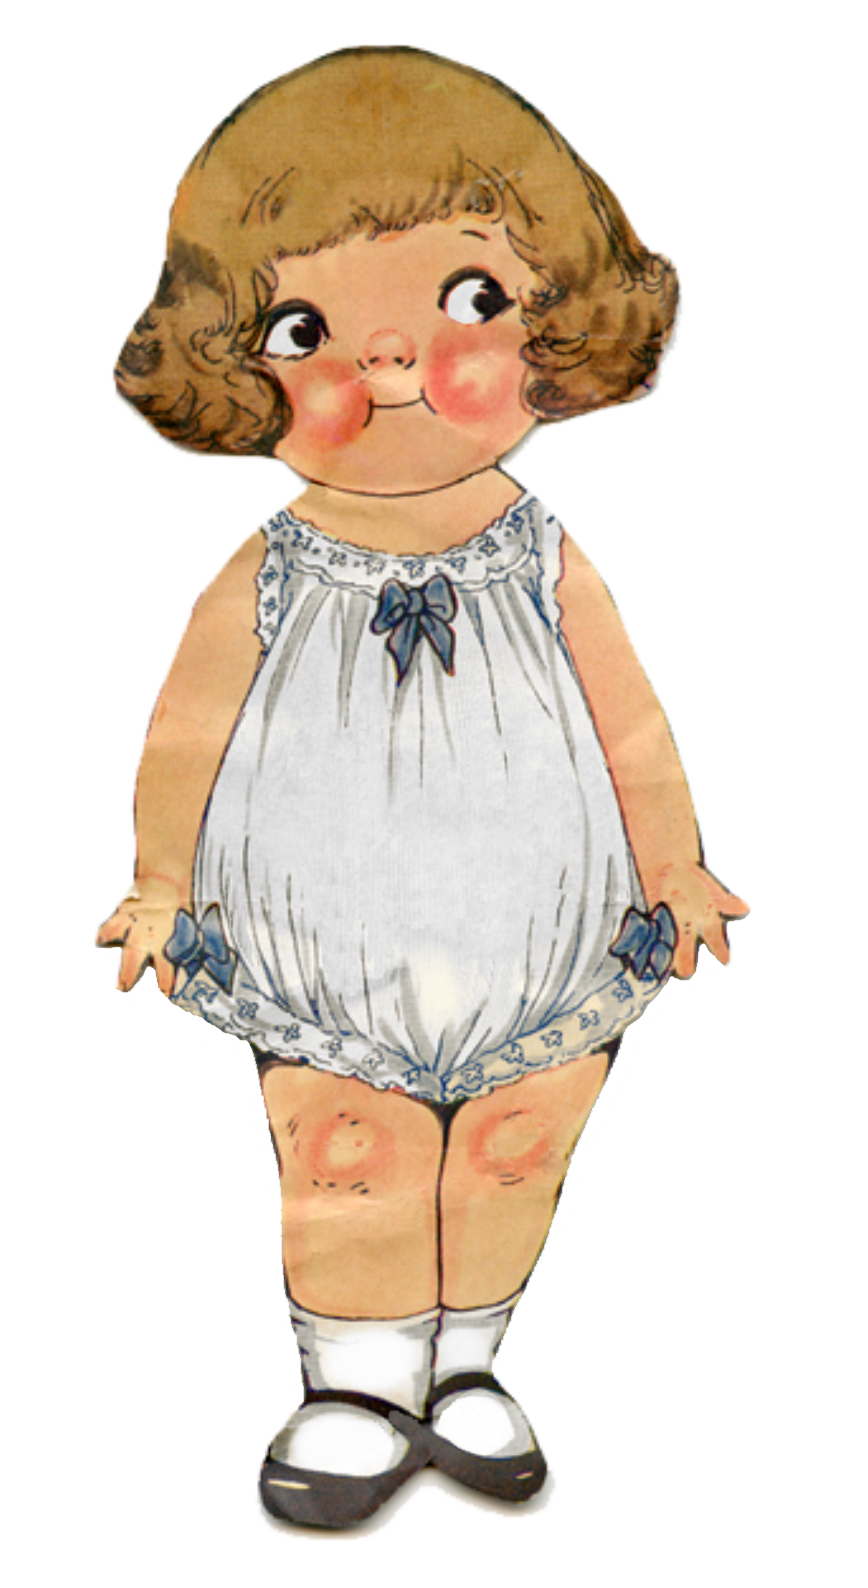 Dollydimple image grafxquest free. Mom clipart vintage